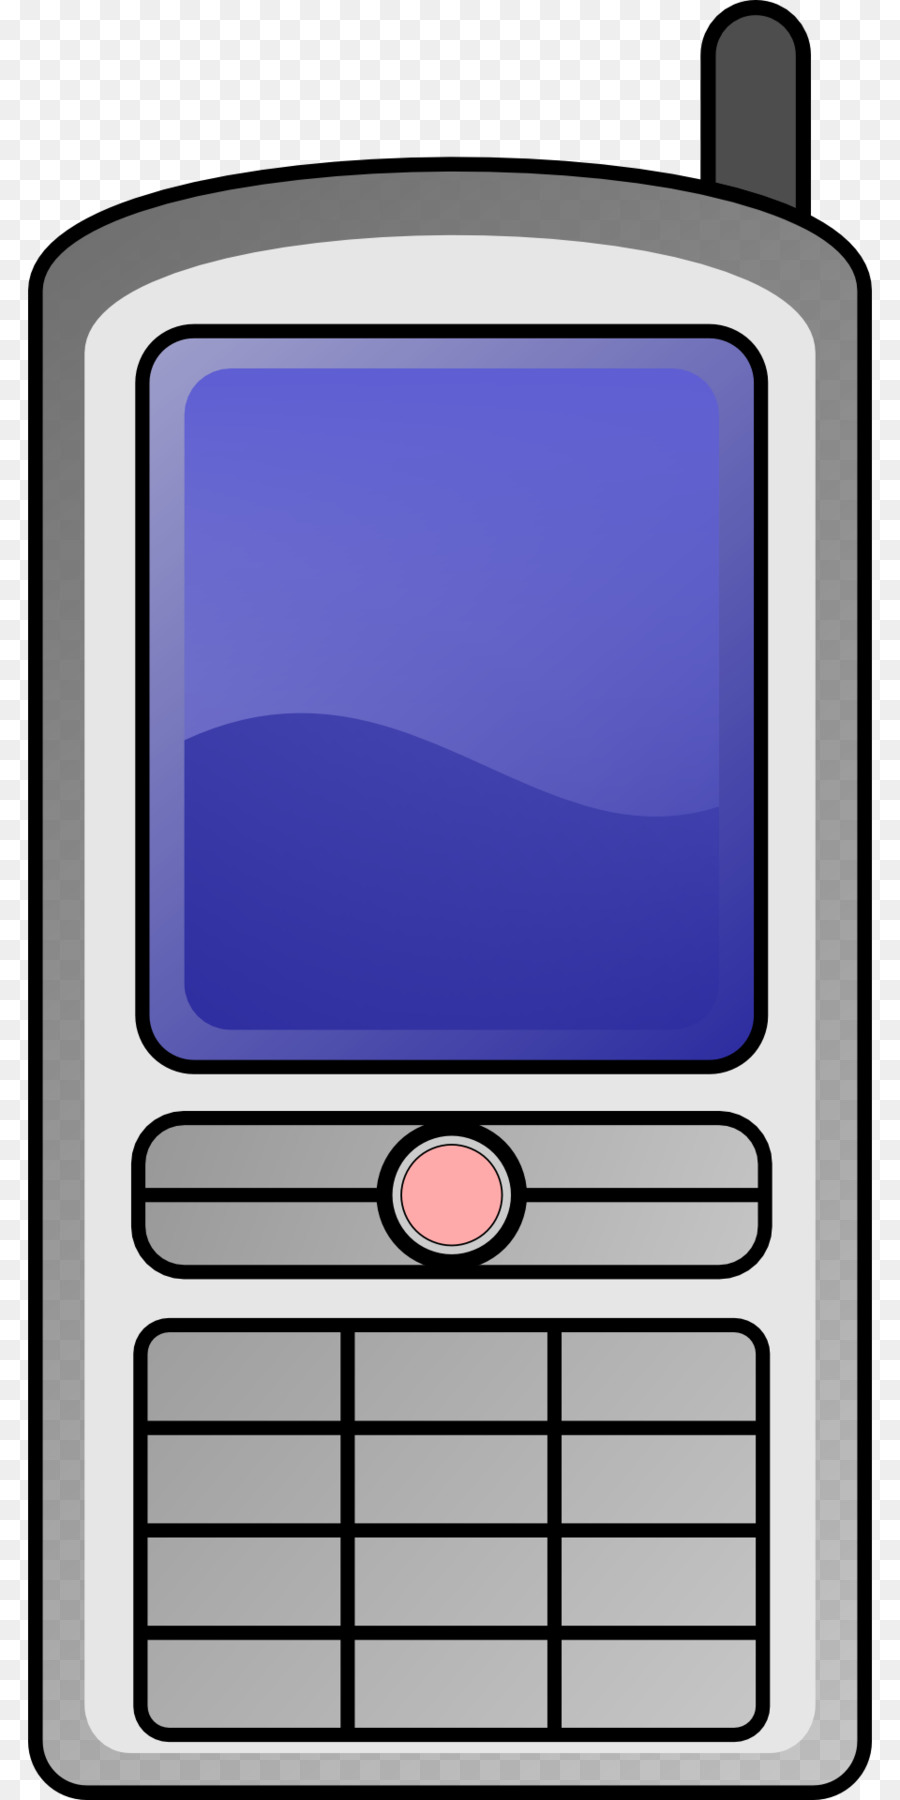 Nokia 222 Iphone Samsung Galaxy Clip Art Cell Phone Download